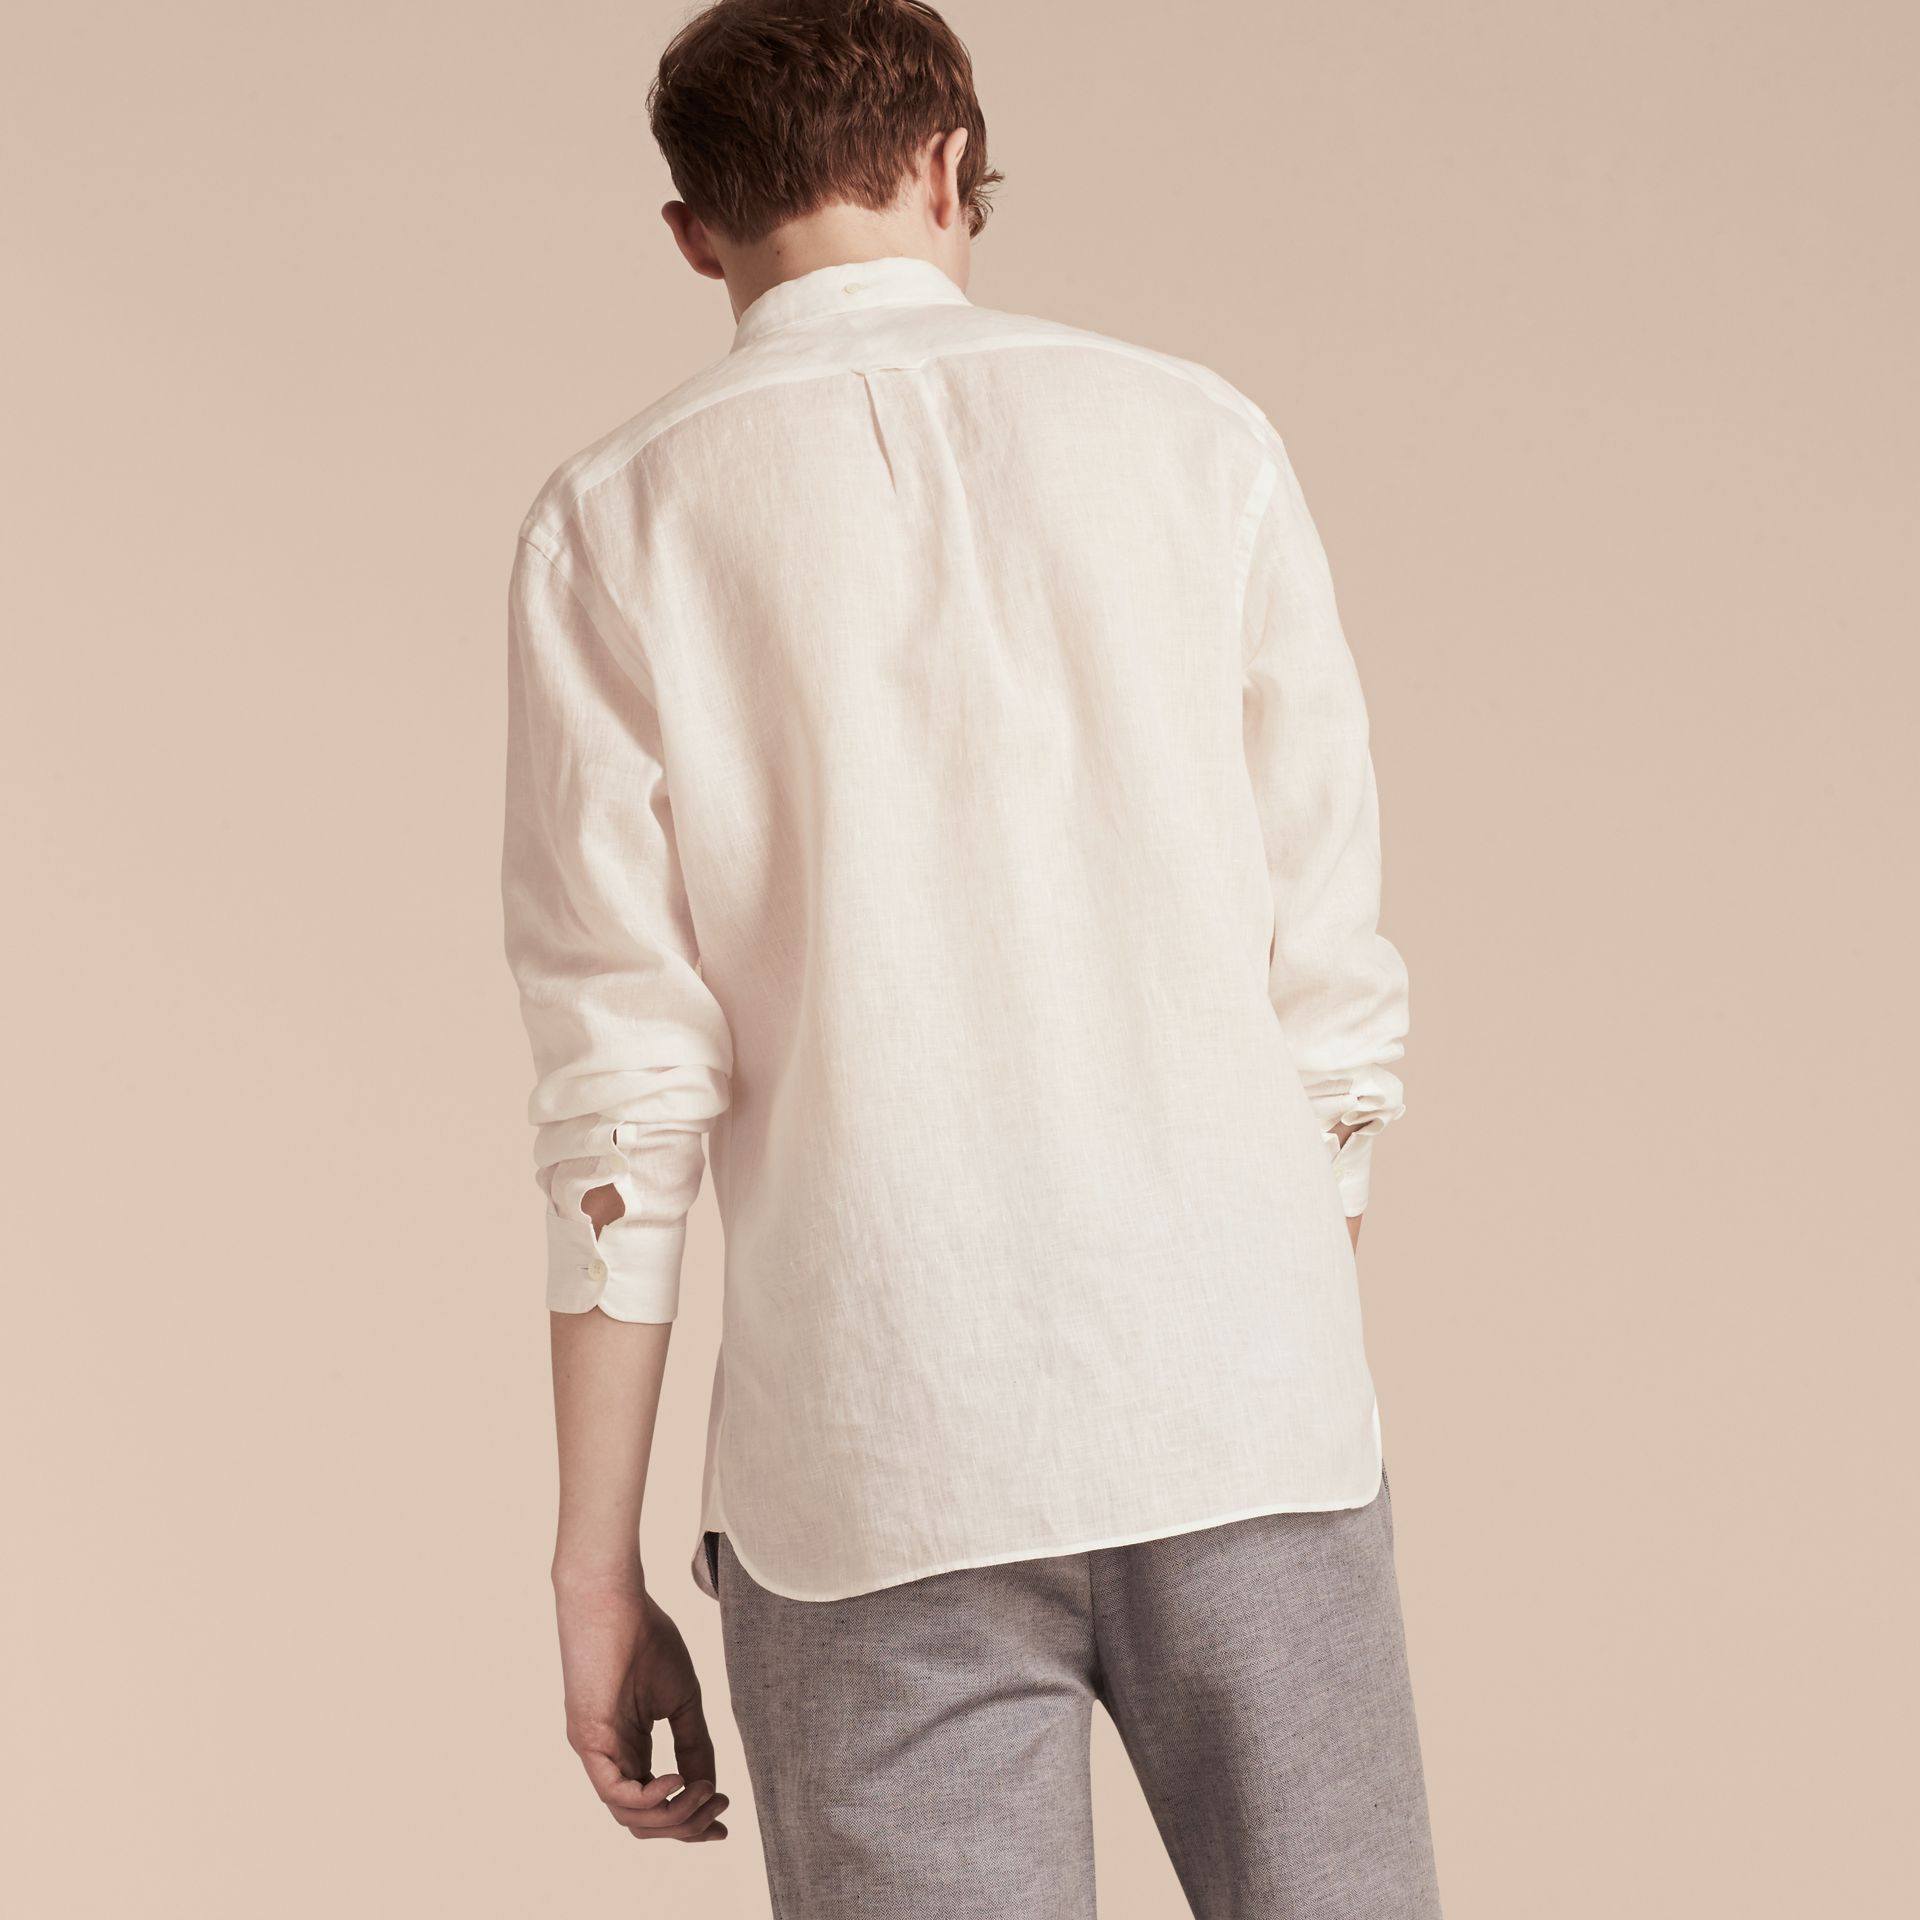 White Button-down Collar Linen Shirt White - gallery image 3